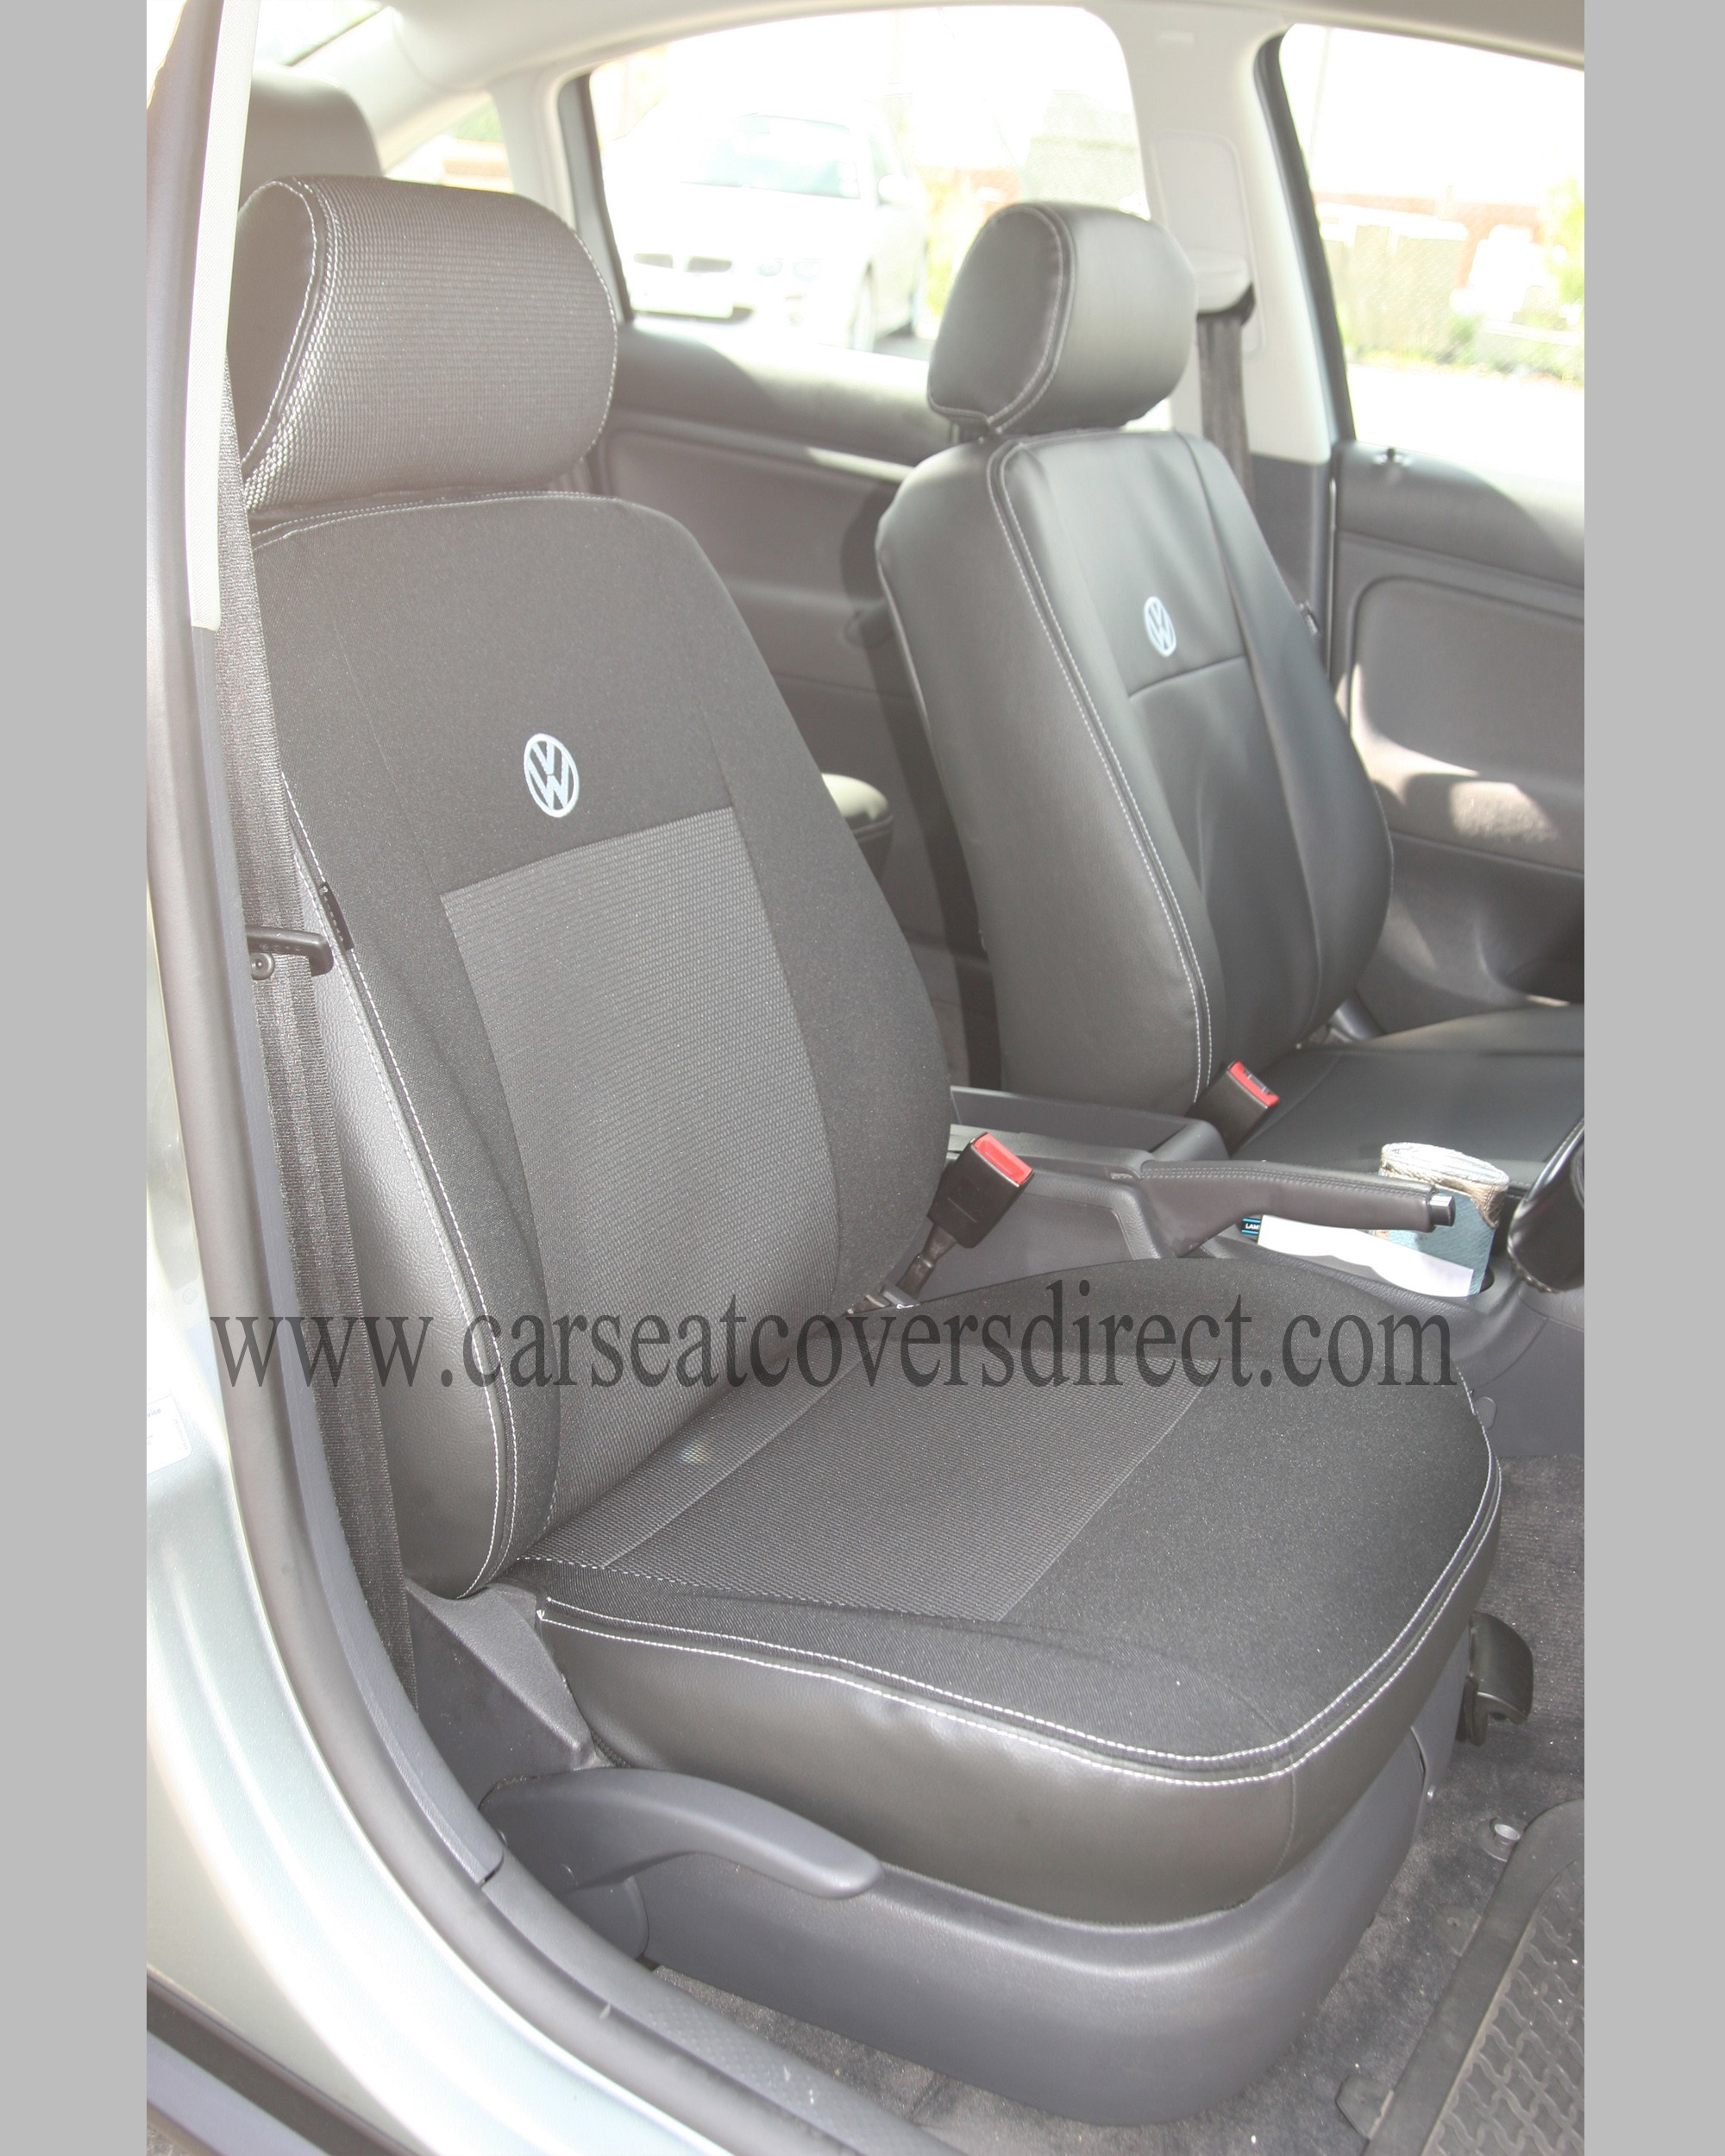 VOLKSWAGEN VW Passat B5 taxi pack seat covers Car Seat Covers Direct - Tailored To Your Choice